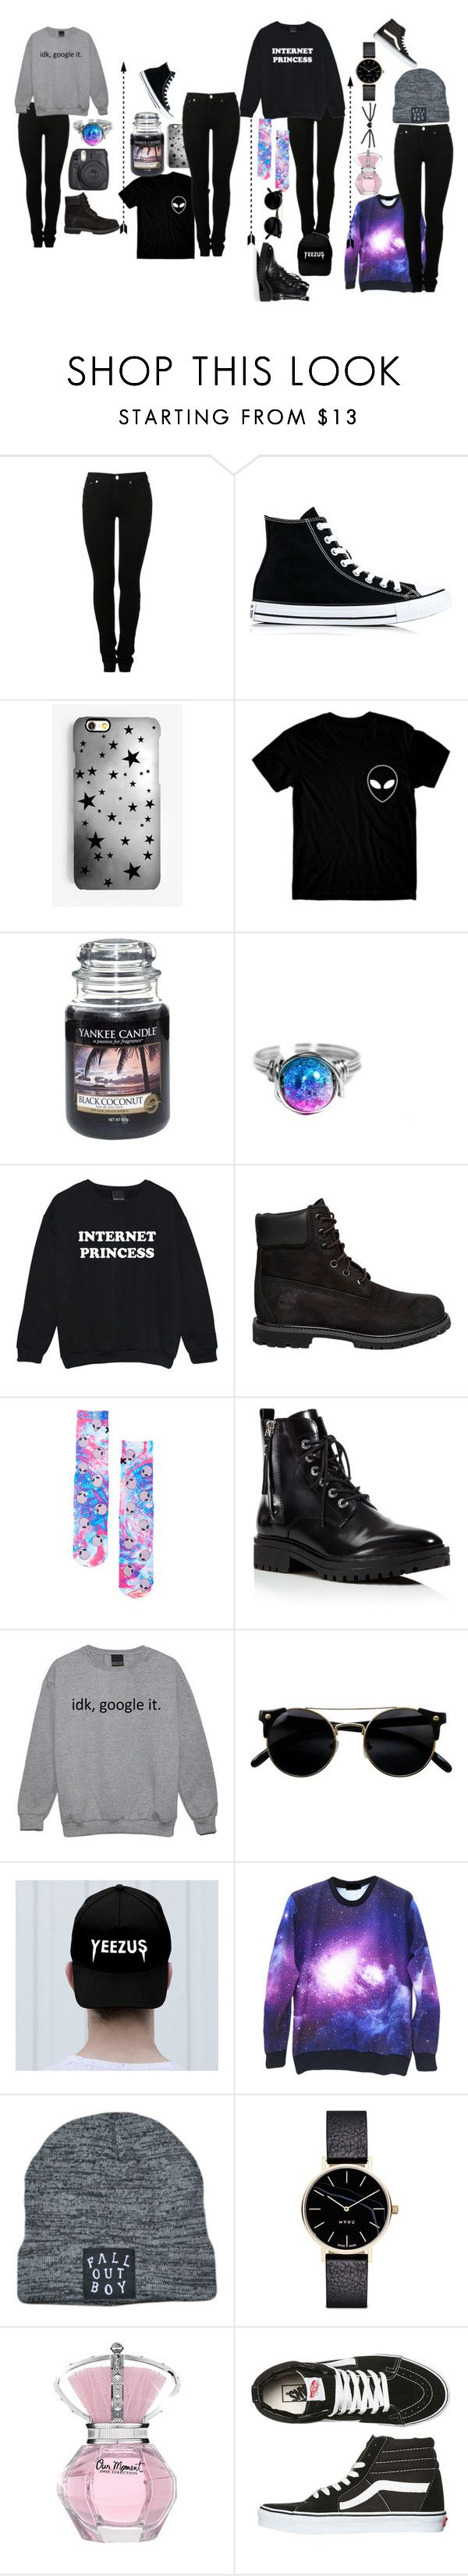 """dan howell inspired outfits"" by aholabeth on Polyvore featuring MM6 Maison Margiela, Converse, Rianna Phillips, Yankee Candle, Timberland, Kendall + Kylie, Myku and Vans"